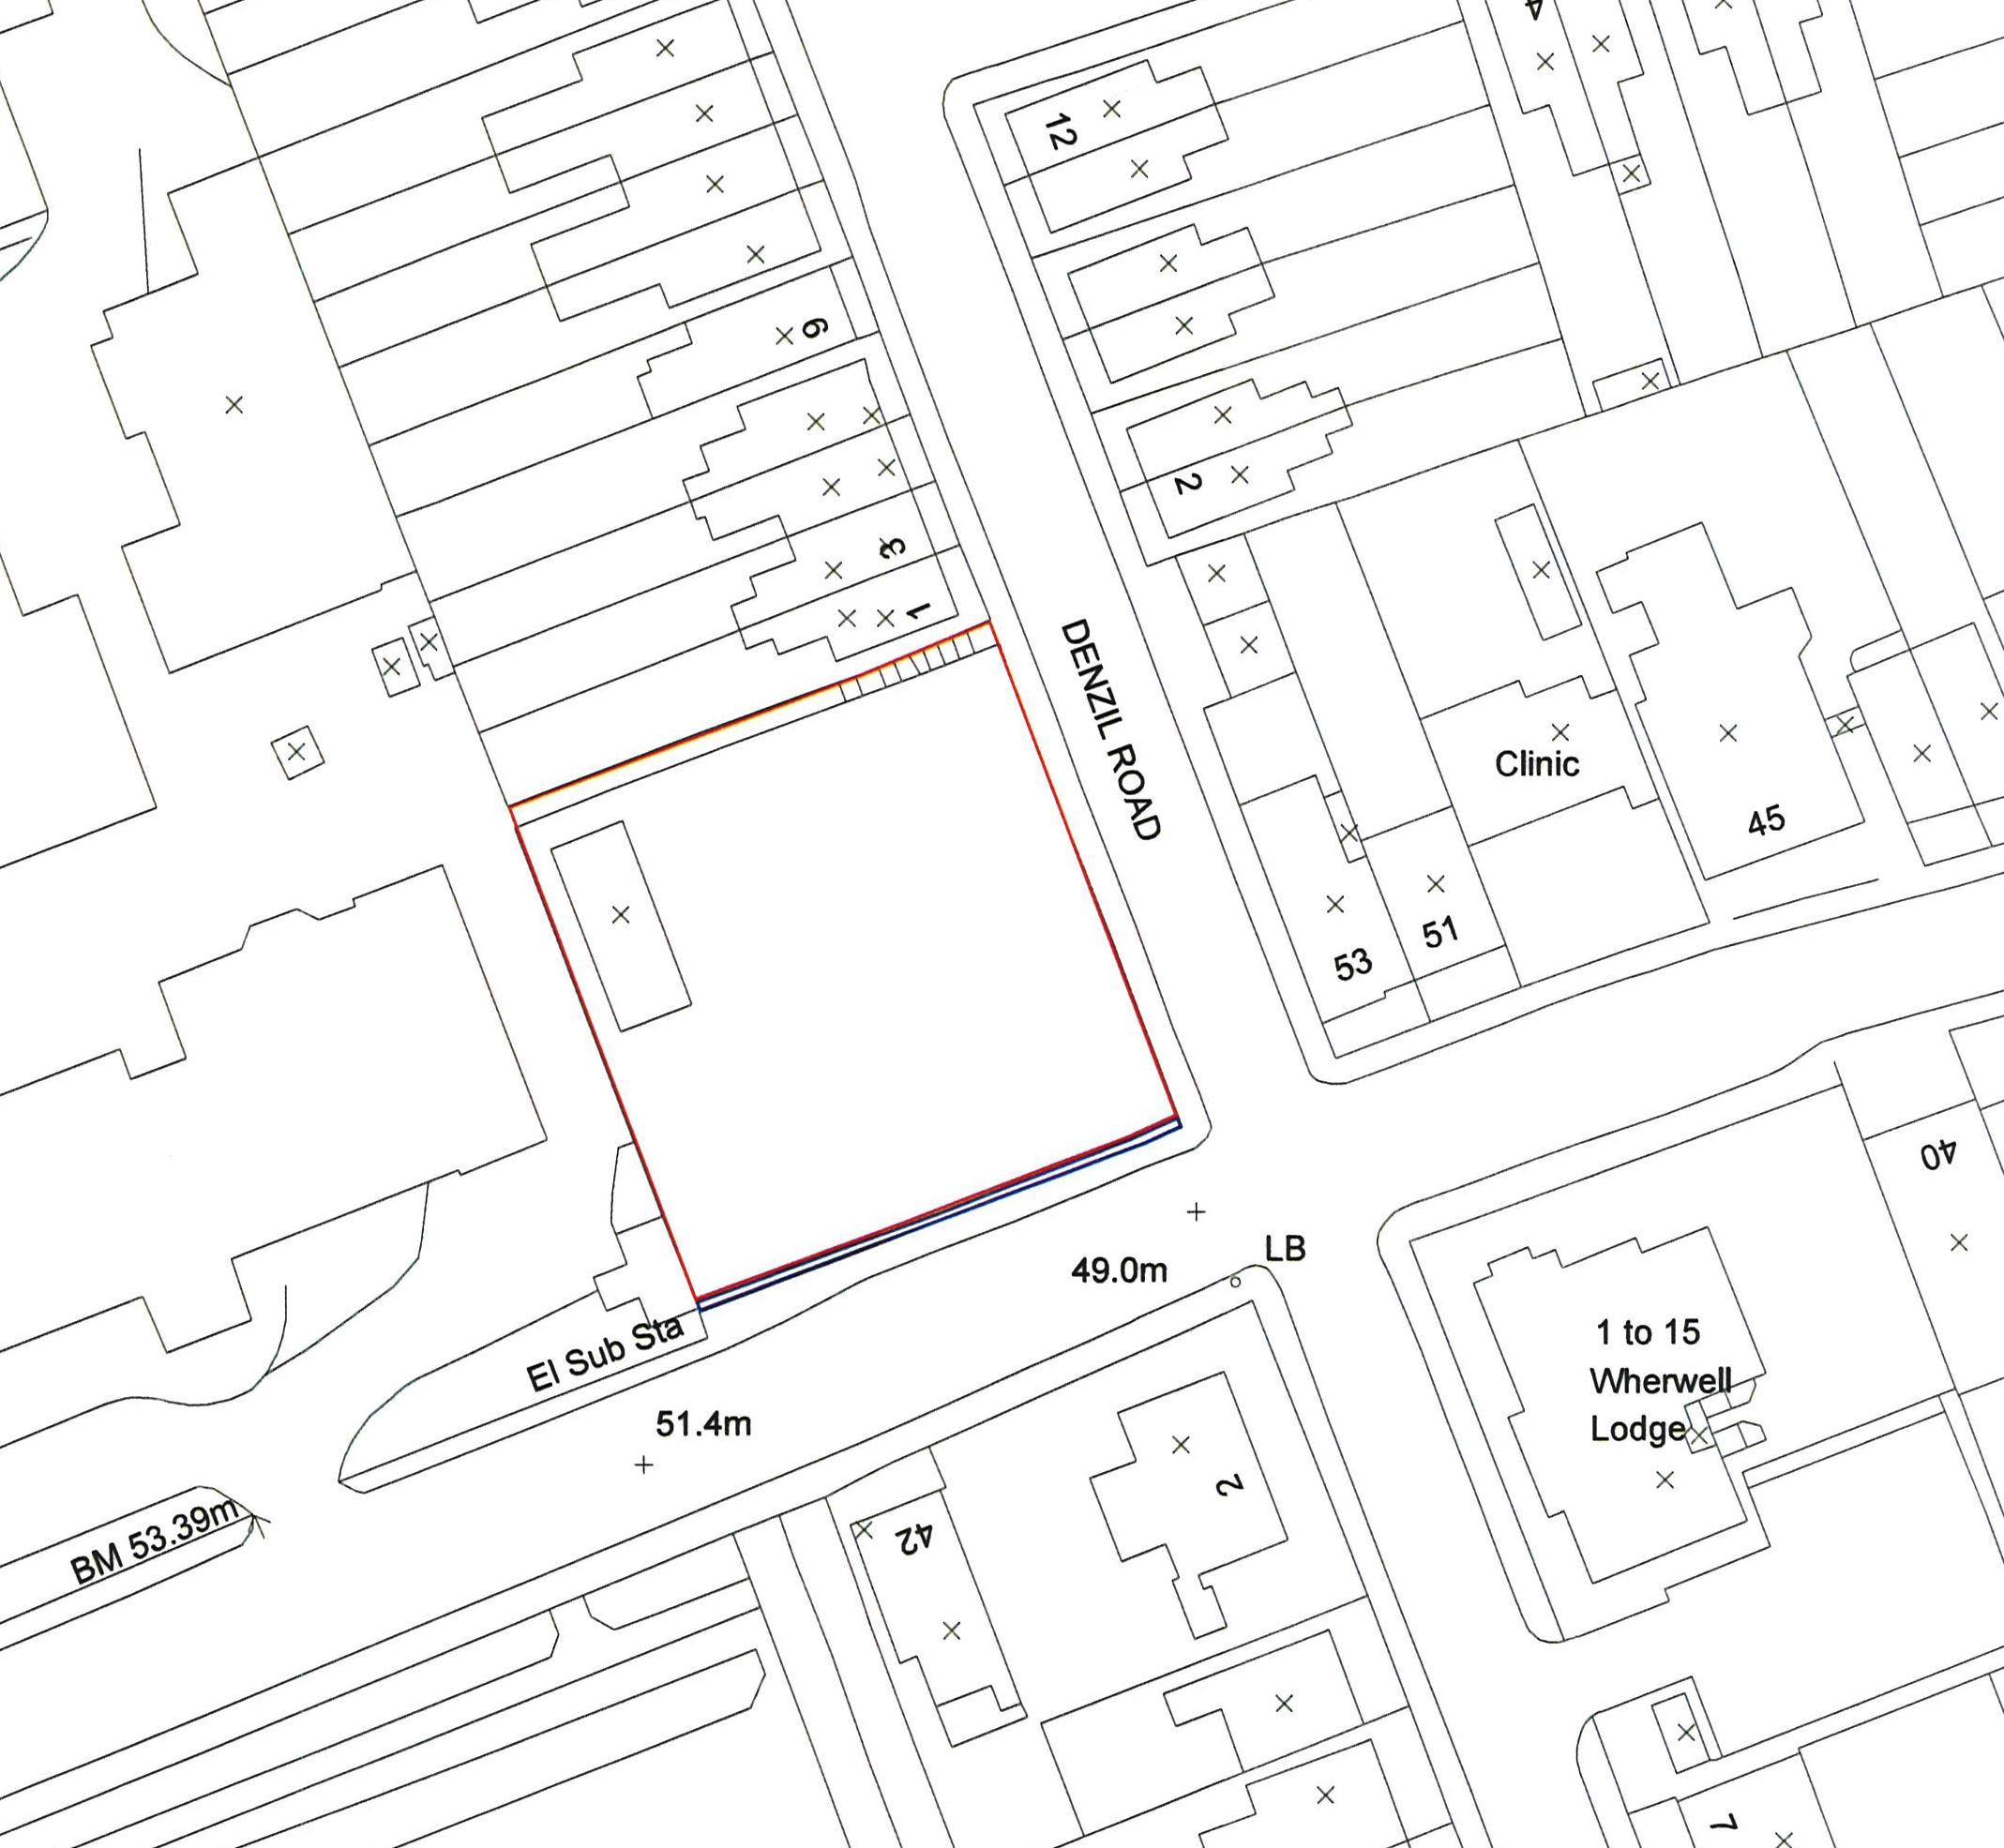 55 - 65 FARNHAM ROAD, GUILDFORD - CONSENT FOR 14 TWO-BEDROOMED FLATS